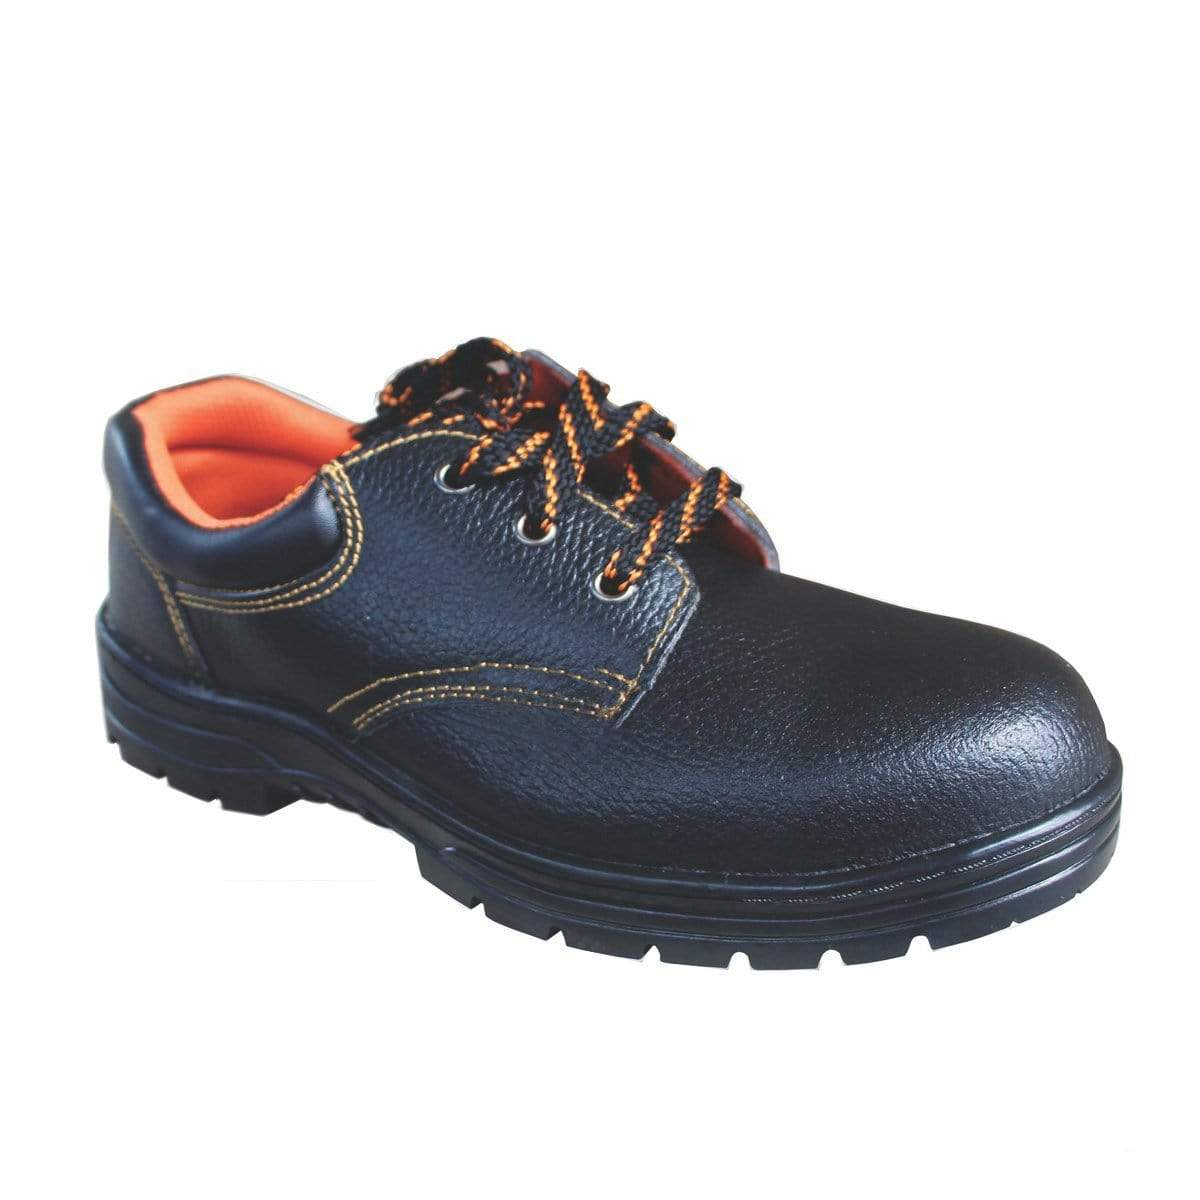 ANEKA Worker Safety Shoes Safety Boots Steel Toe Cap Kasut UK12 1000#